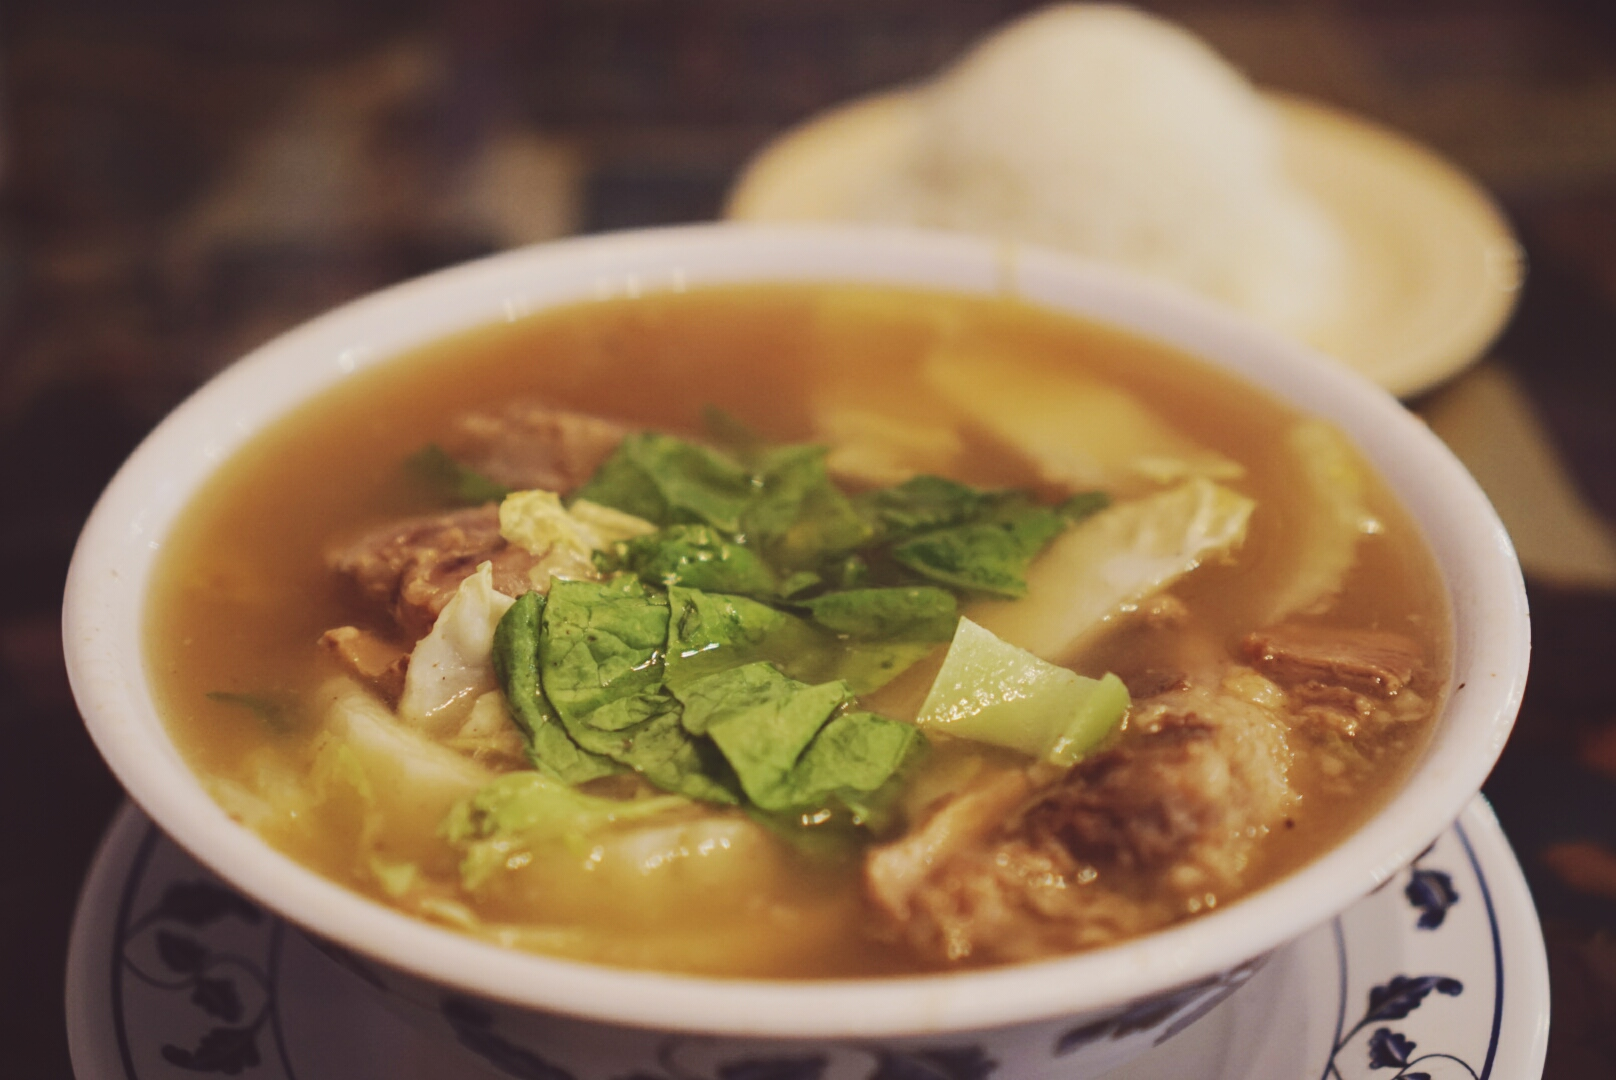 Soup Search: Hawaiian Oxtail Soup | PHOTOGRAPHY AND PHO… WTPHO?!